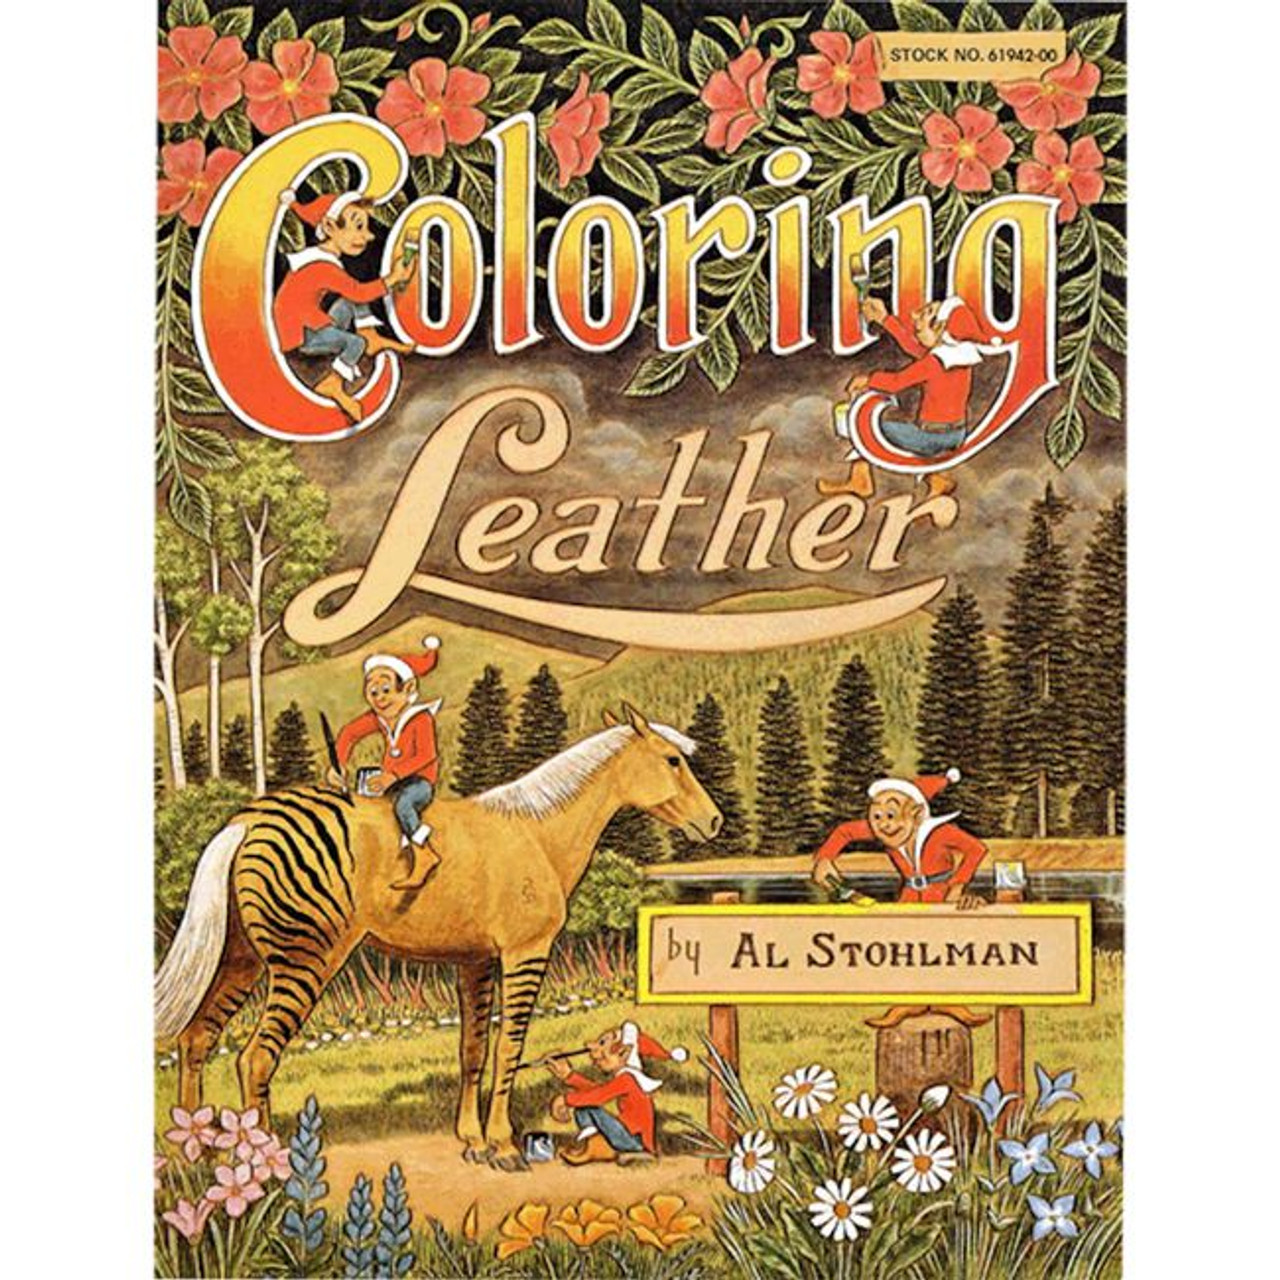 Coloring Leather Book By Al Stohlman 61942 00